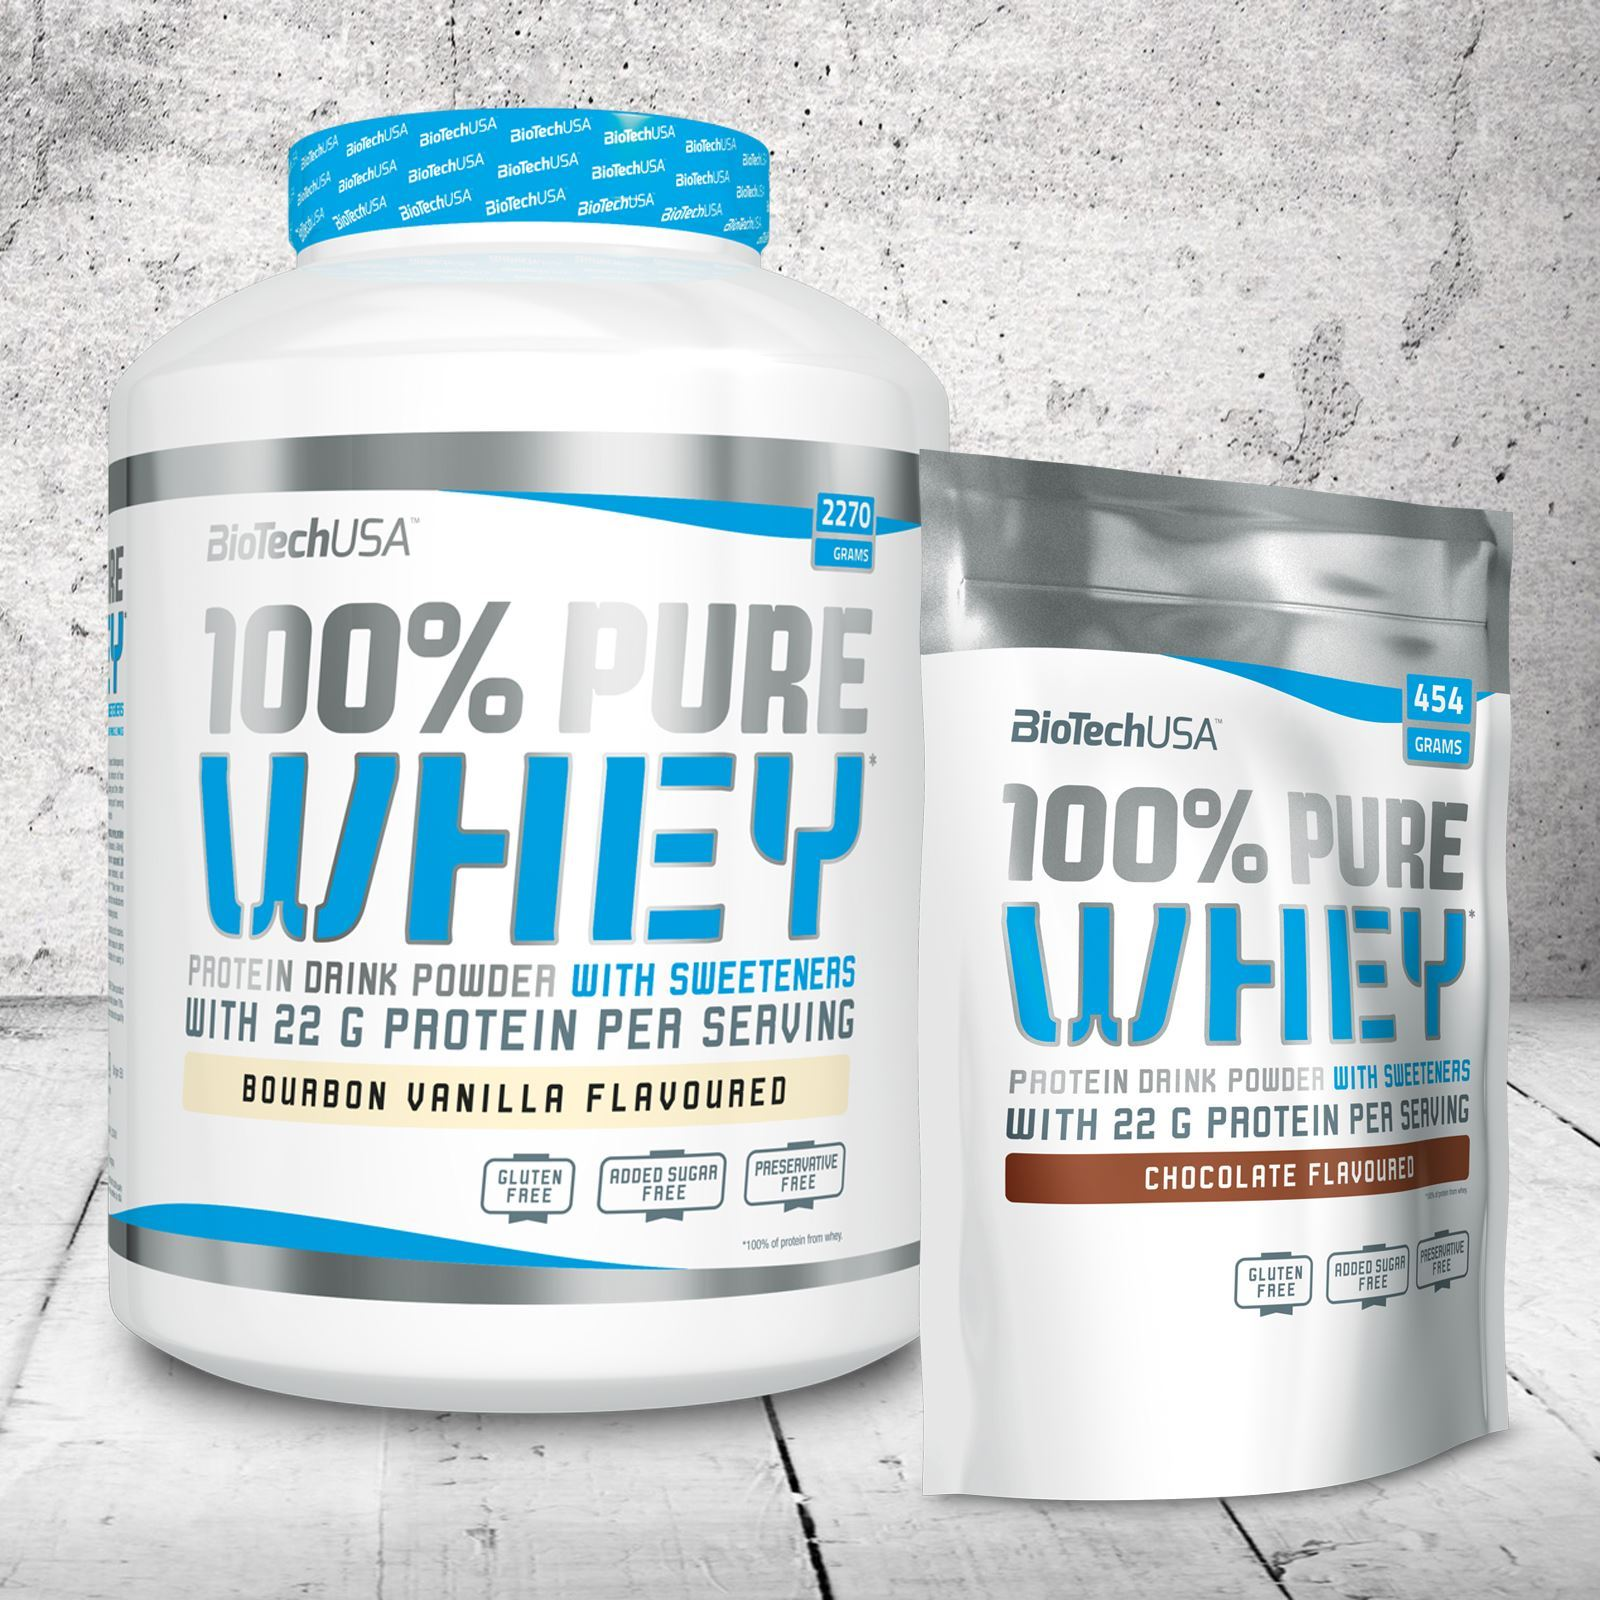 BIOTECH USA 100% PURE WHEY PROTEIN 2724g WPC GLUTEN-FREE WPC 2724g EXTRA AMINO ACIDS f9ace7